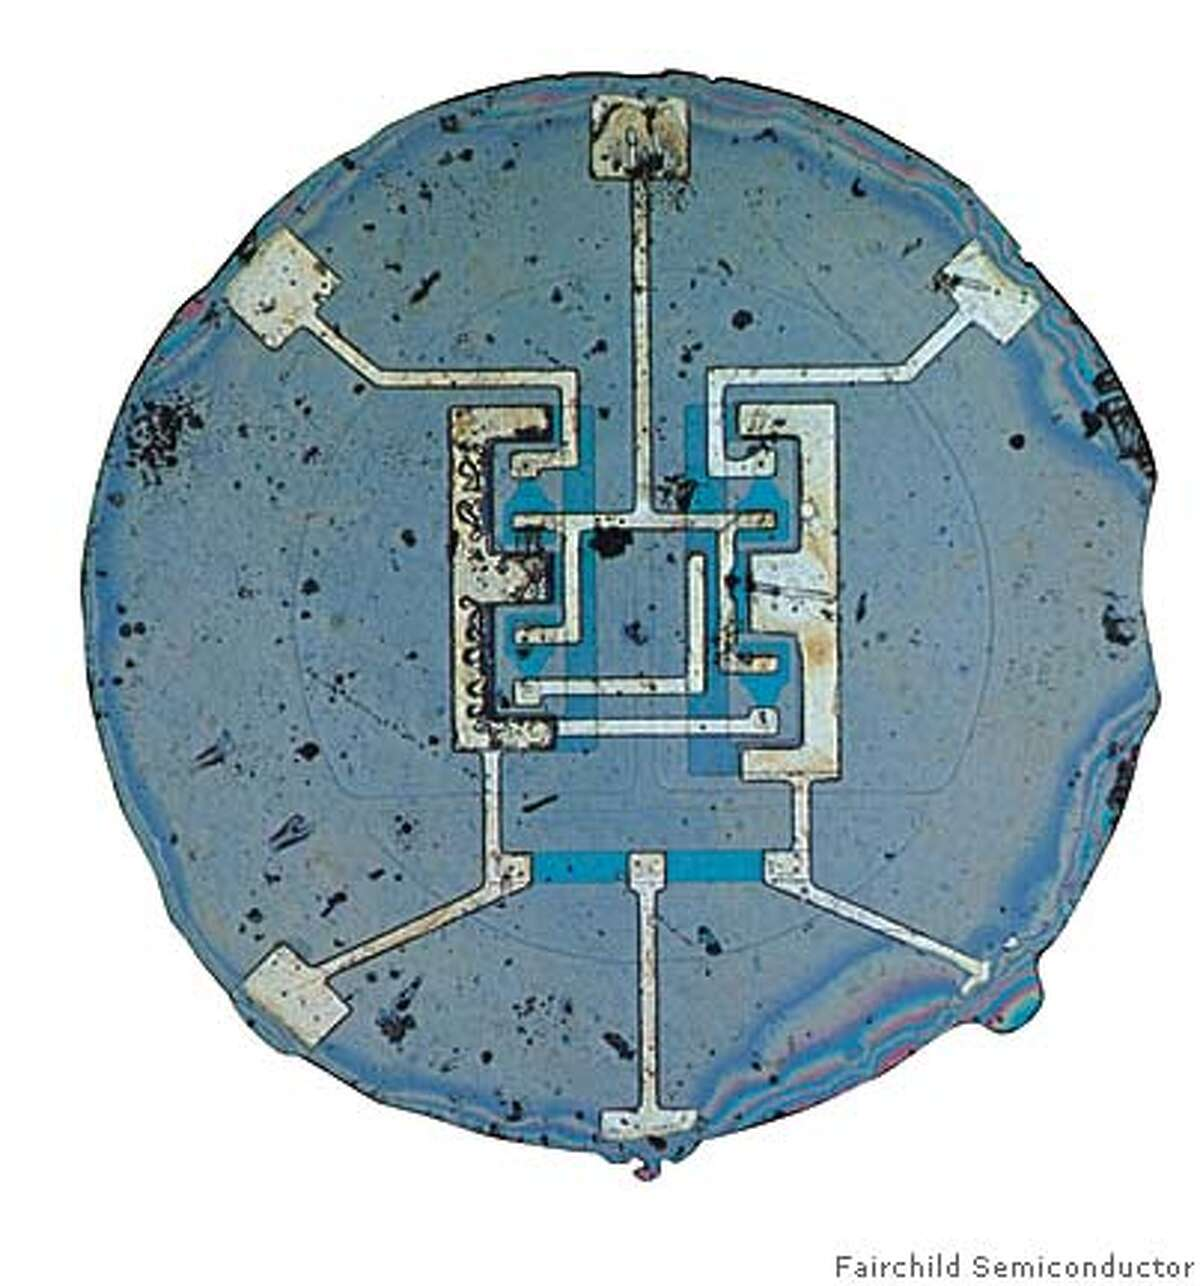 svhistory30_transistor This resistor-transistor logic (RTL) product--a set/reset flip-flop--was the industry's first integrated circuit available as a monolithic chip. Fairchild Semiconductor / Courtesy to The Chronicle